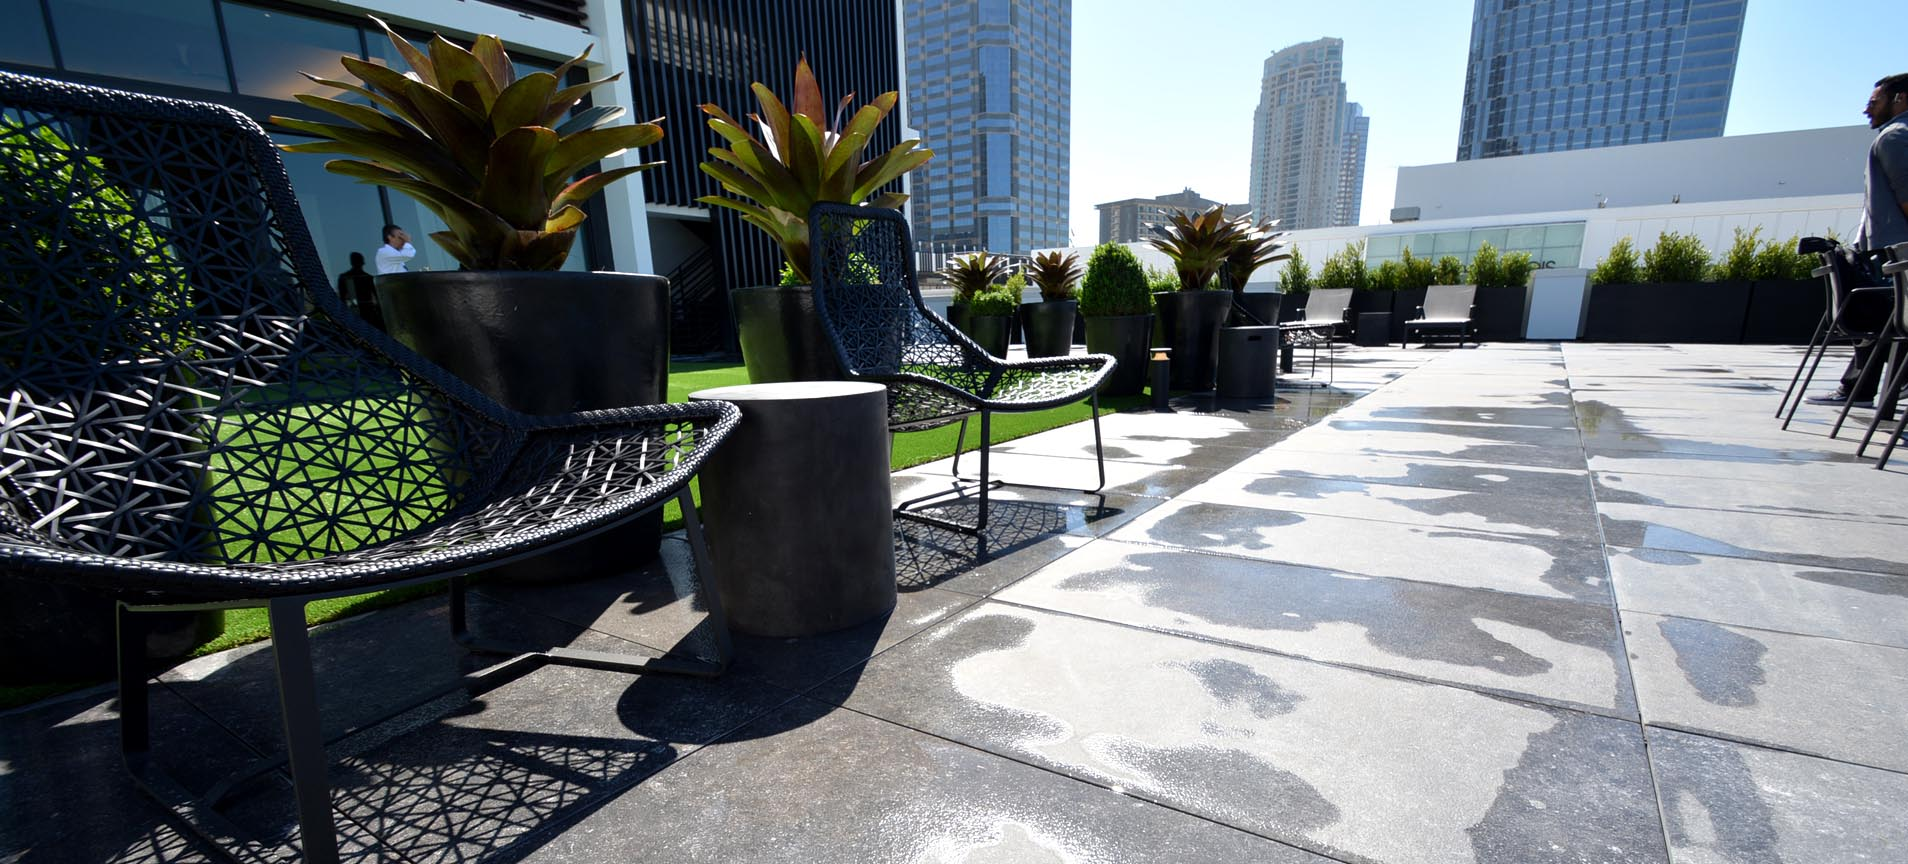 Equinox-Gym-Roof-Deck-Porcelain-Pavers-Turf-06-1